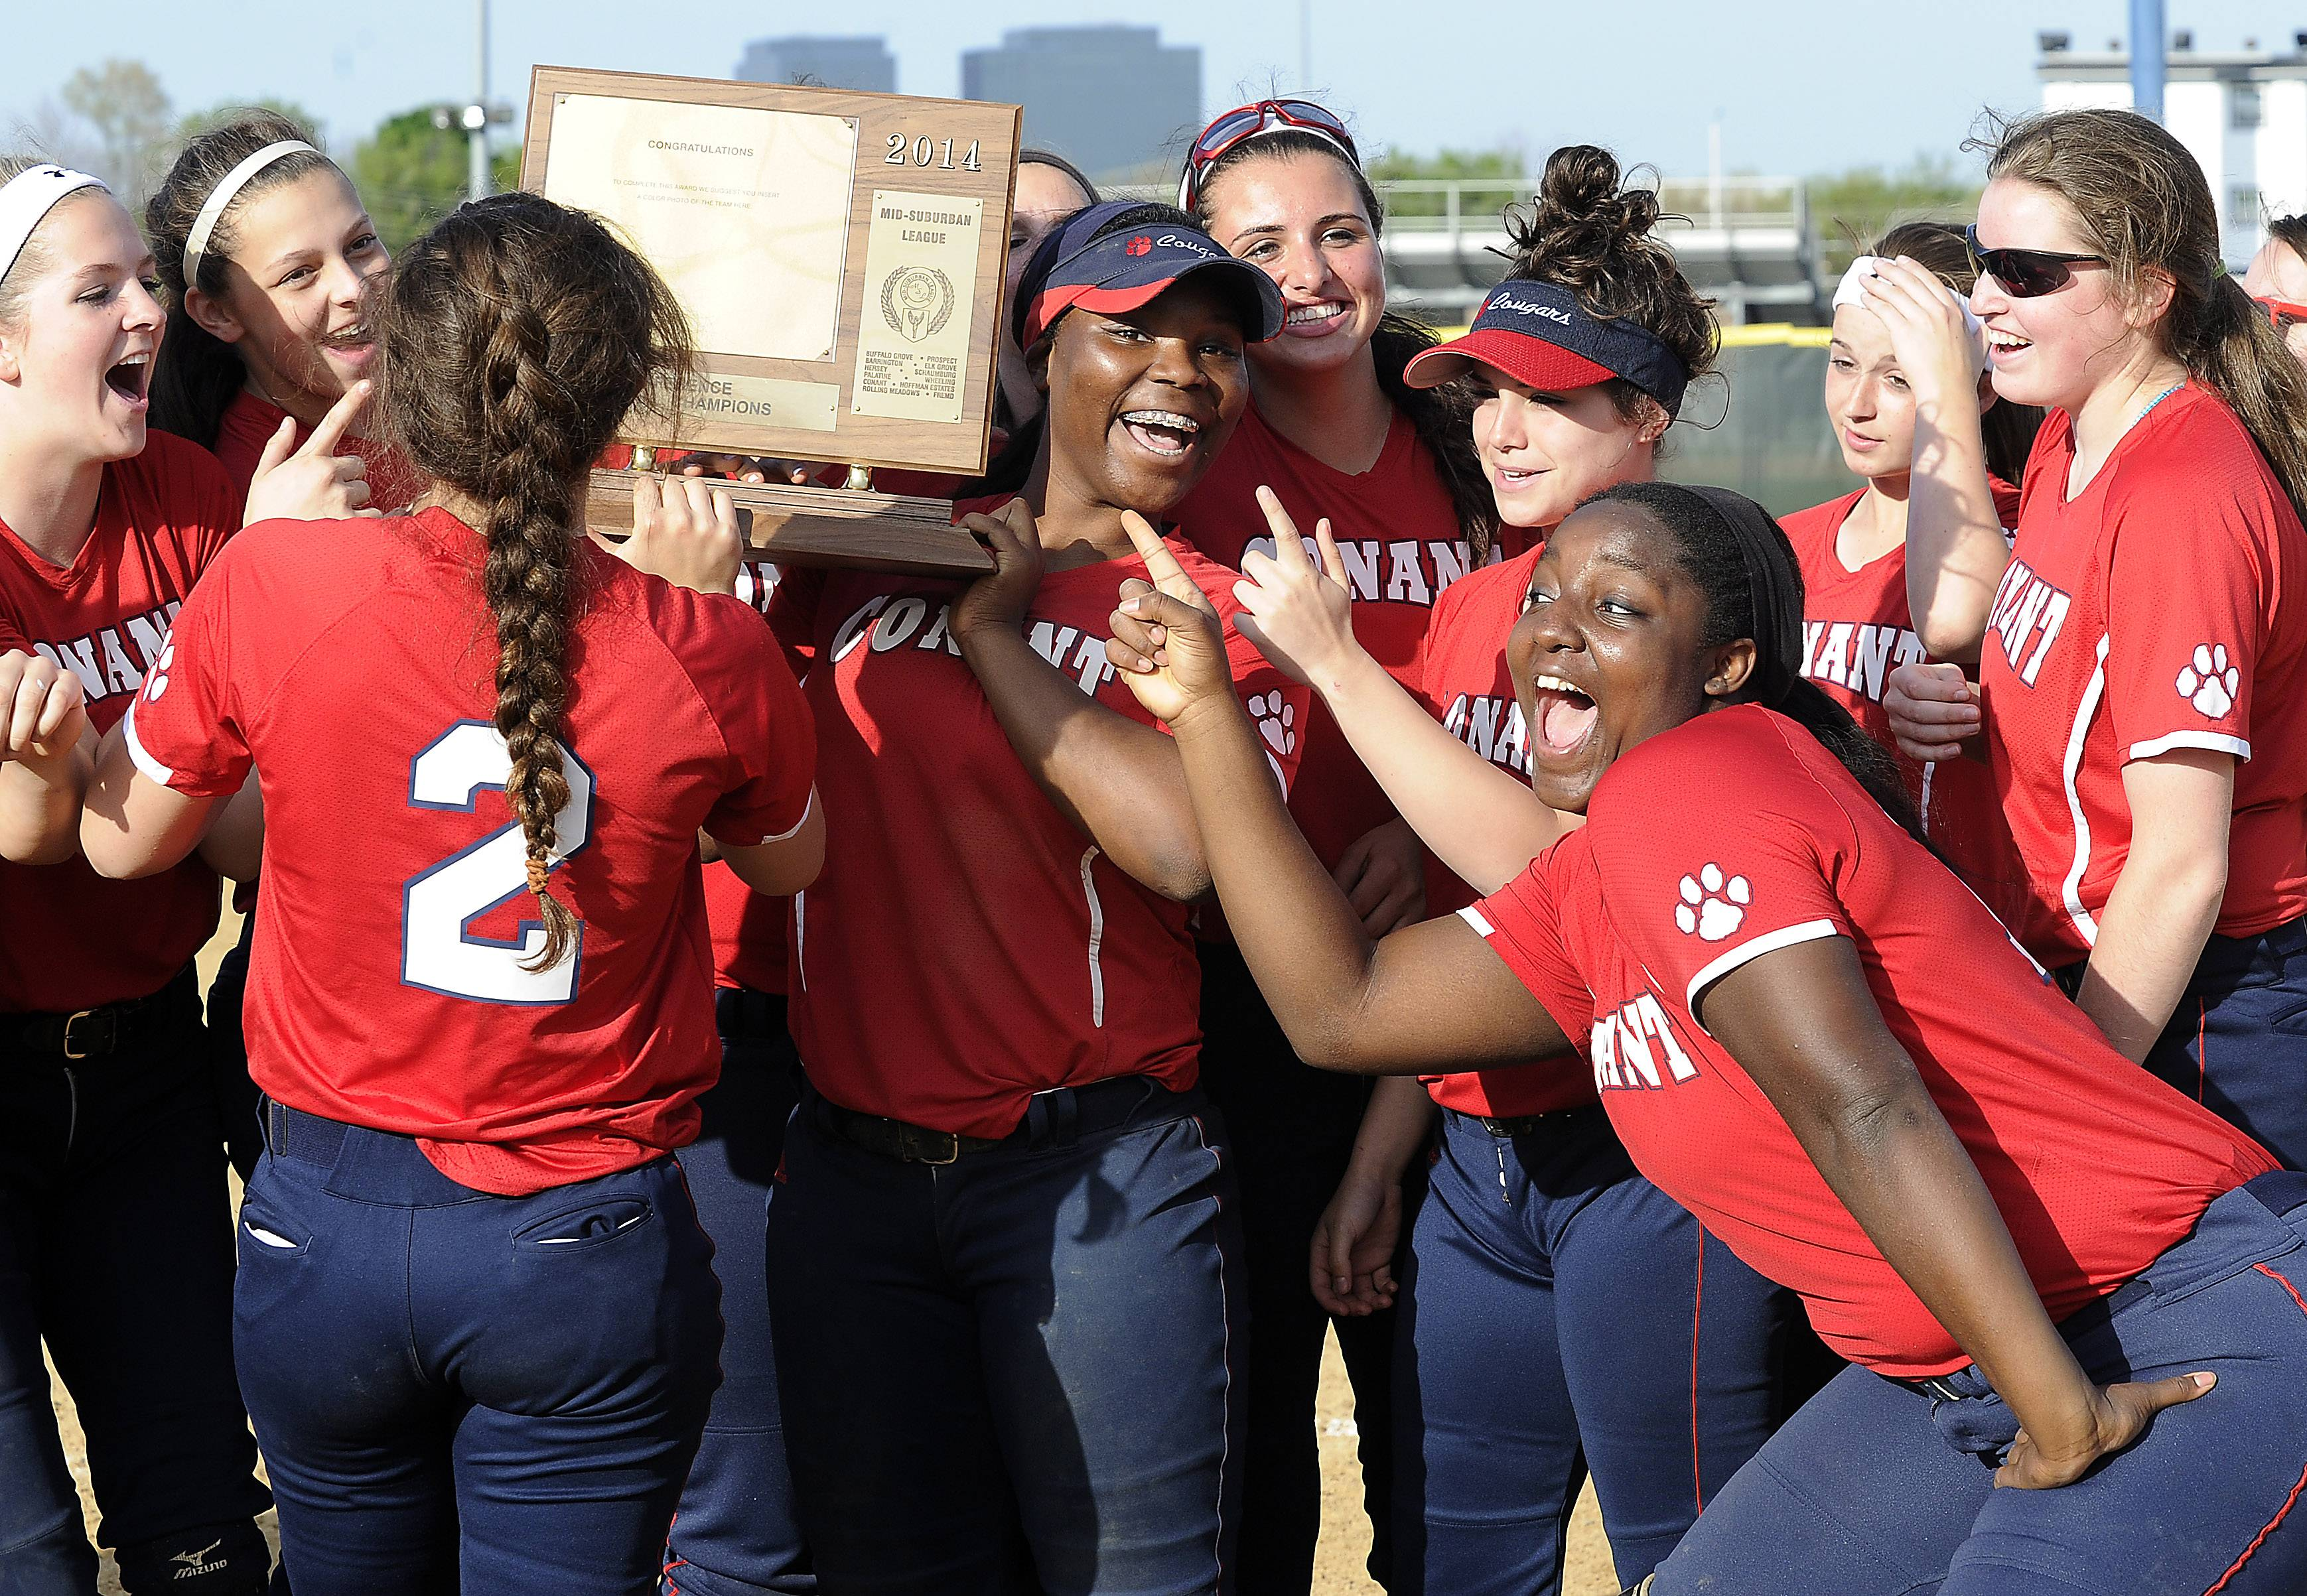 Conant's softball team celebrates its 3-0 win over Buffalo Grove in the Mid-Suburban League championship game Thursday in Hoffman Estates.